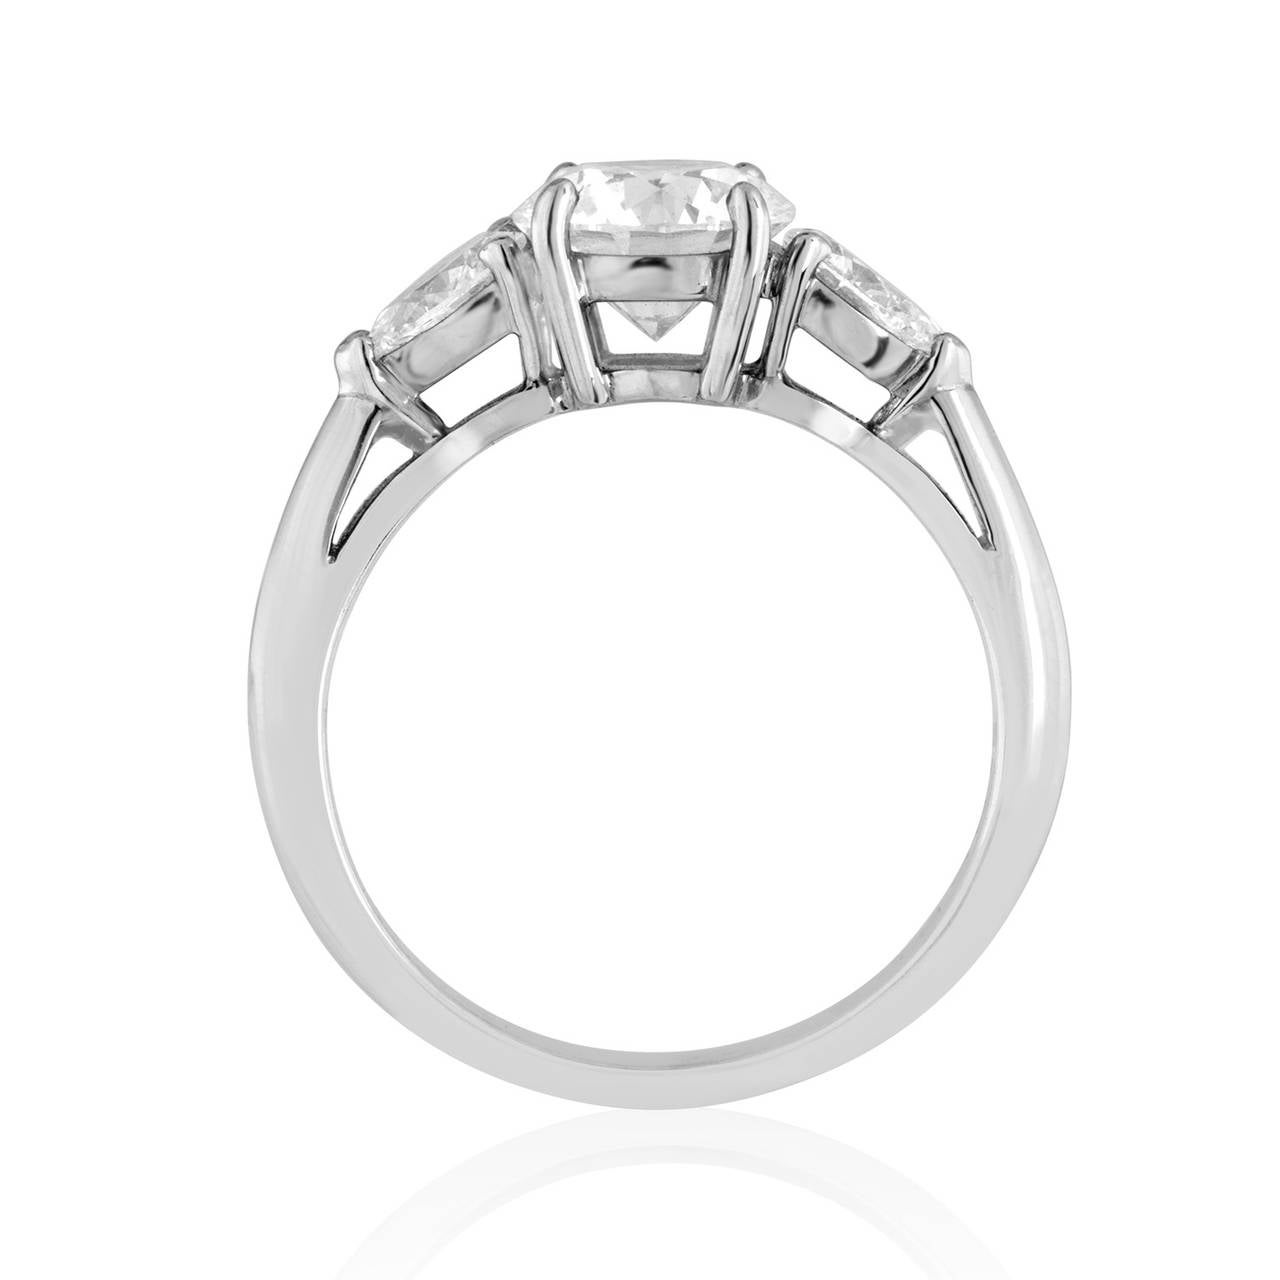 Tiffany & Co. 1.53 Carat G VS1 Diamond Platinum Engagement Ring 3